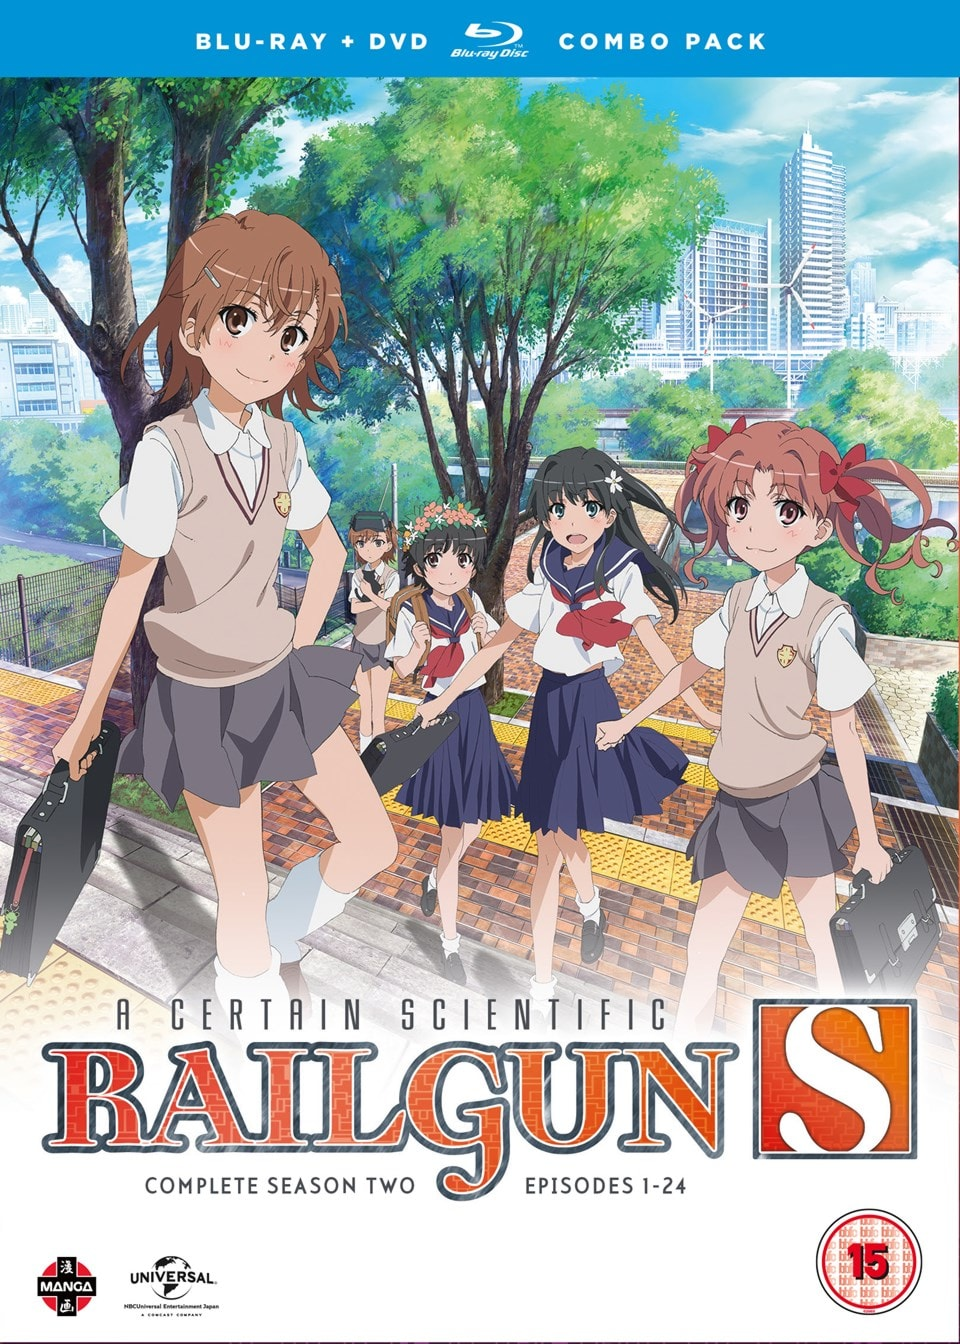 A Certain Scientific Railgun S: Complete Season 2 - 1